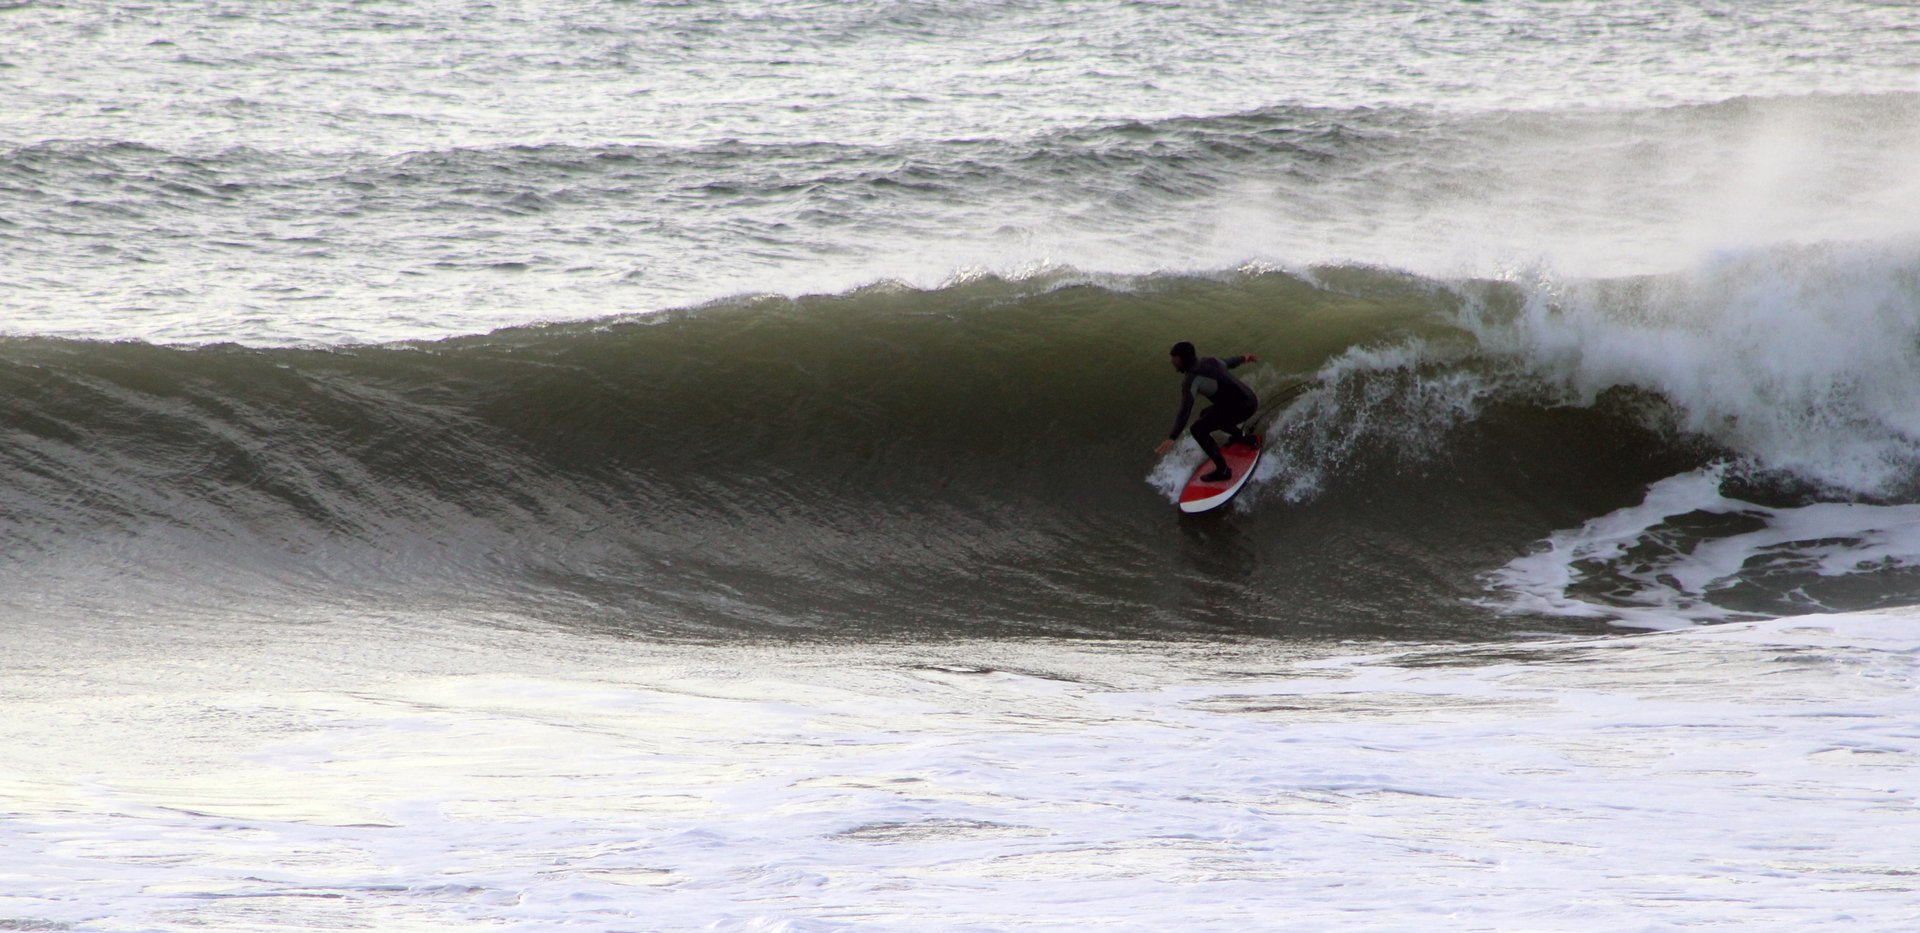 Vendee Surf Photo's photo of La Sauzaie